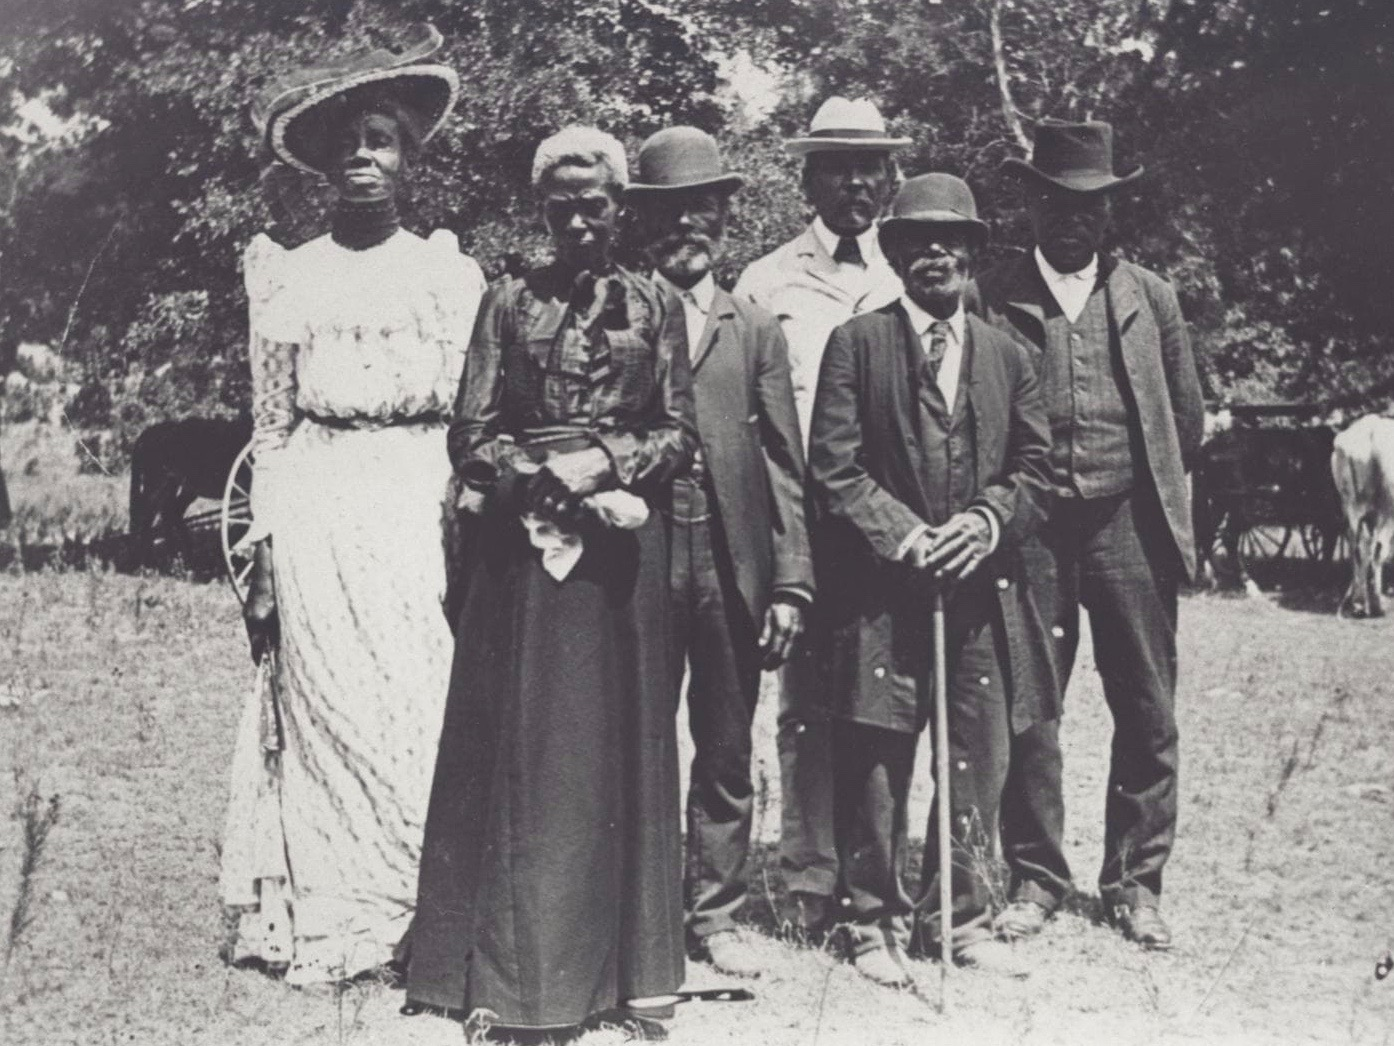 Juneteenth celebrants pose for a photo in Texas in 1900. (Wikimedia Commons)